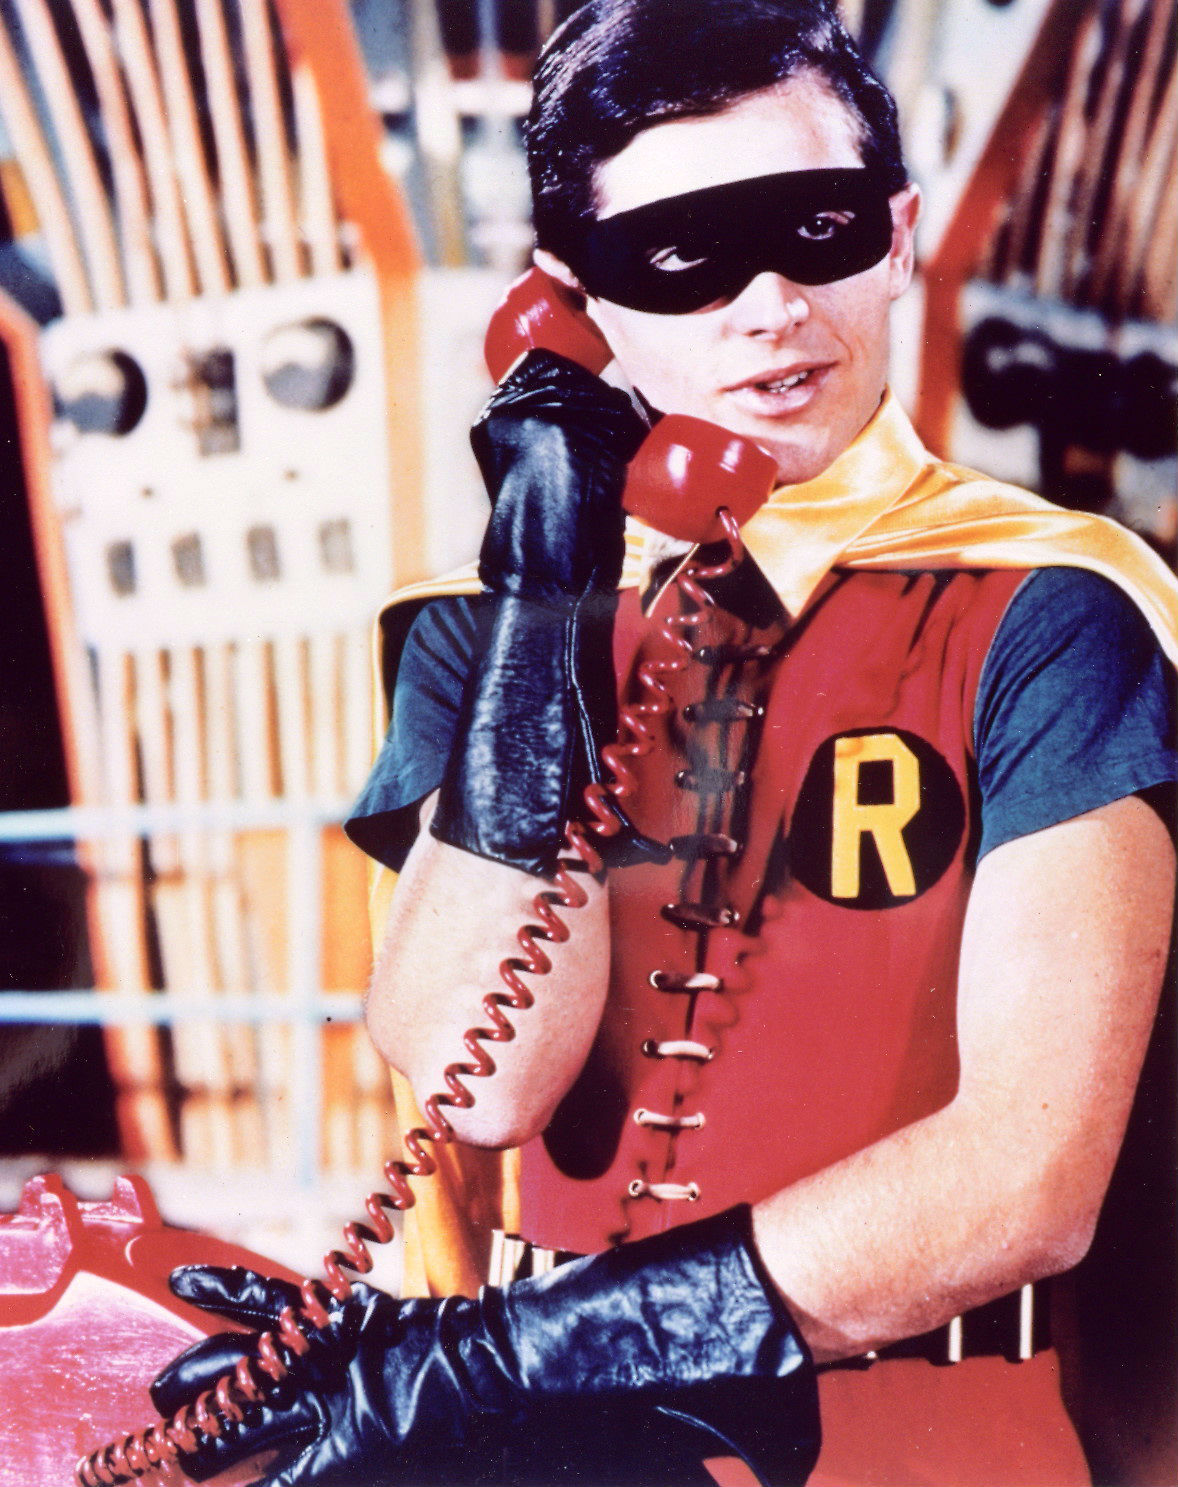 monkeypants:  Happy Birthday Burt Ward  Happy belated birthday Burt Ward. The first boy who made me want to don a super villain costume. ;)